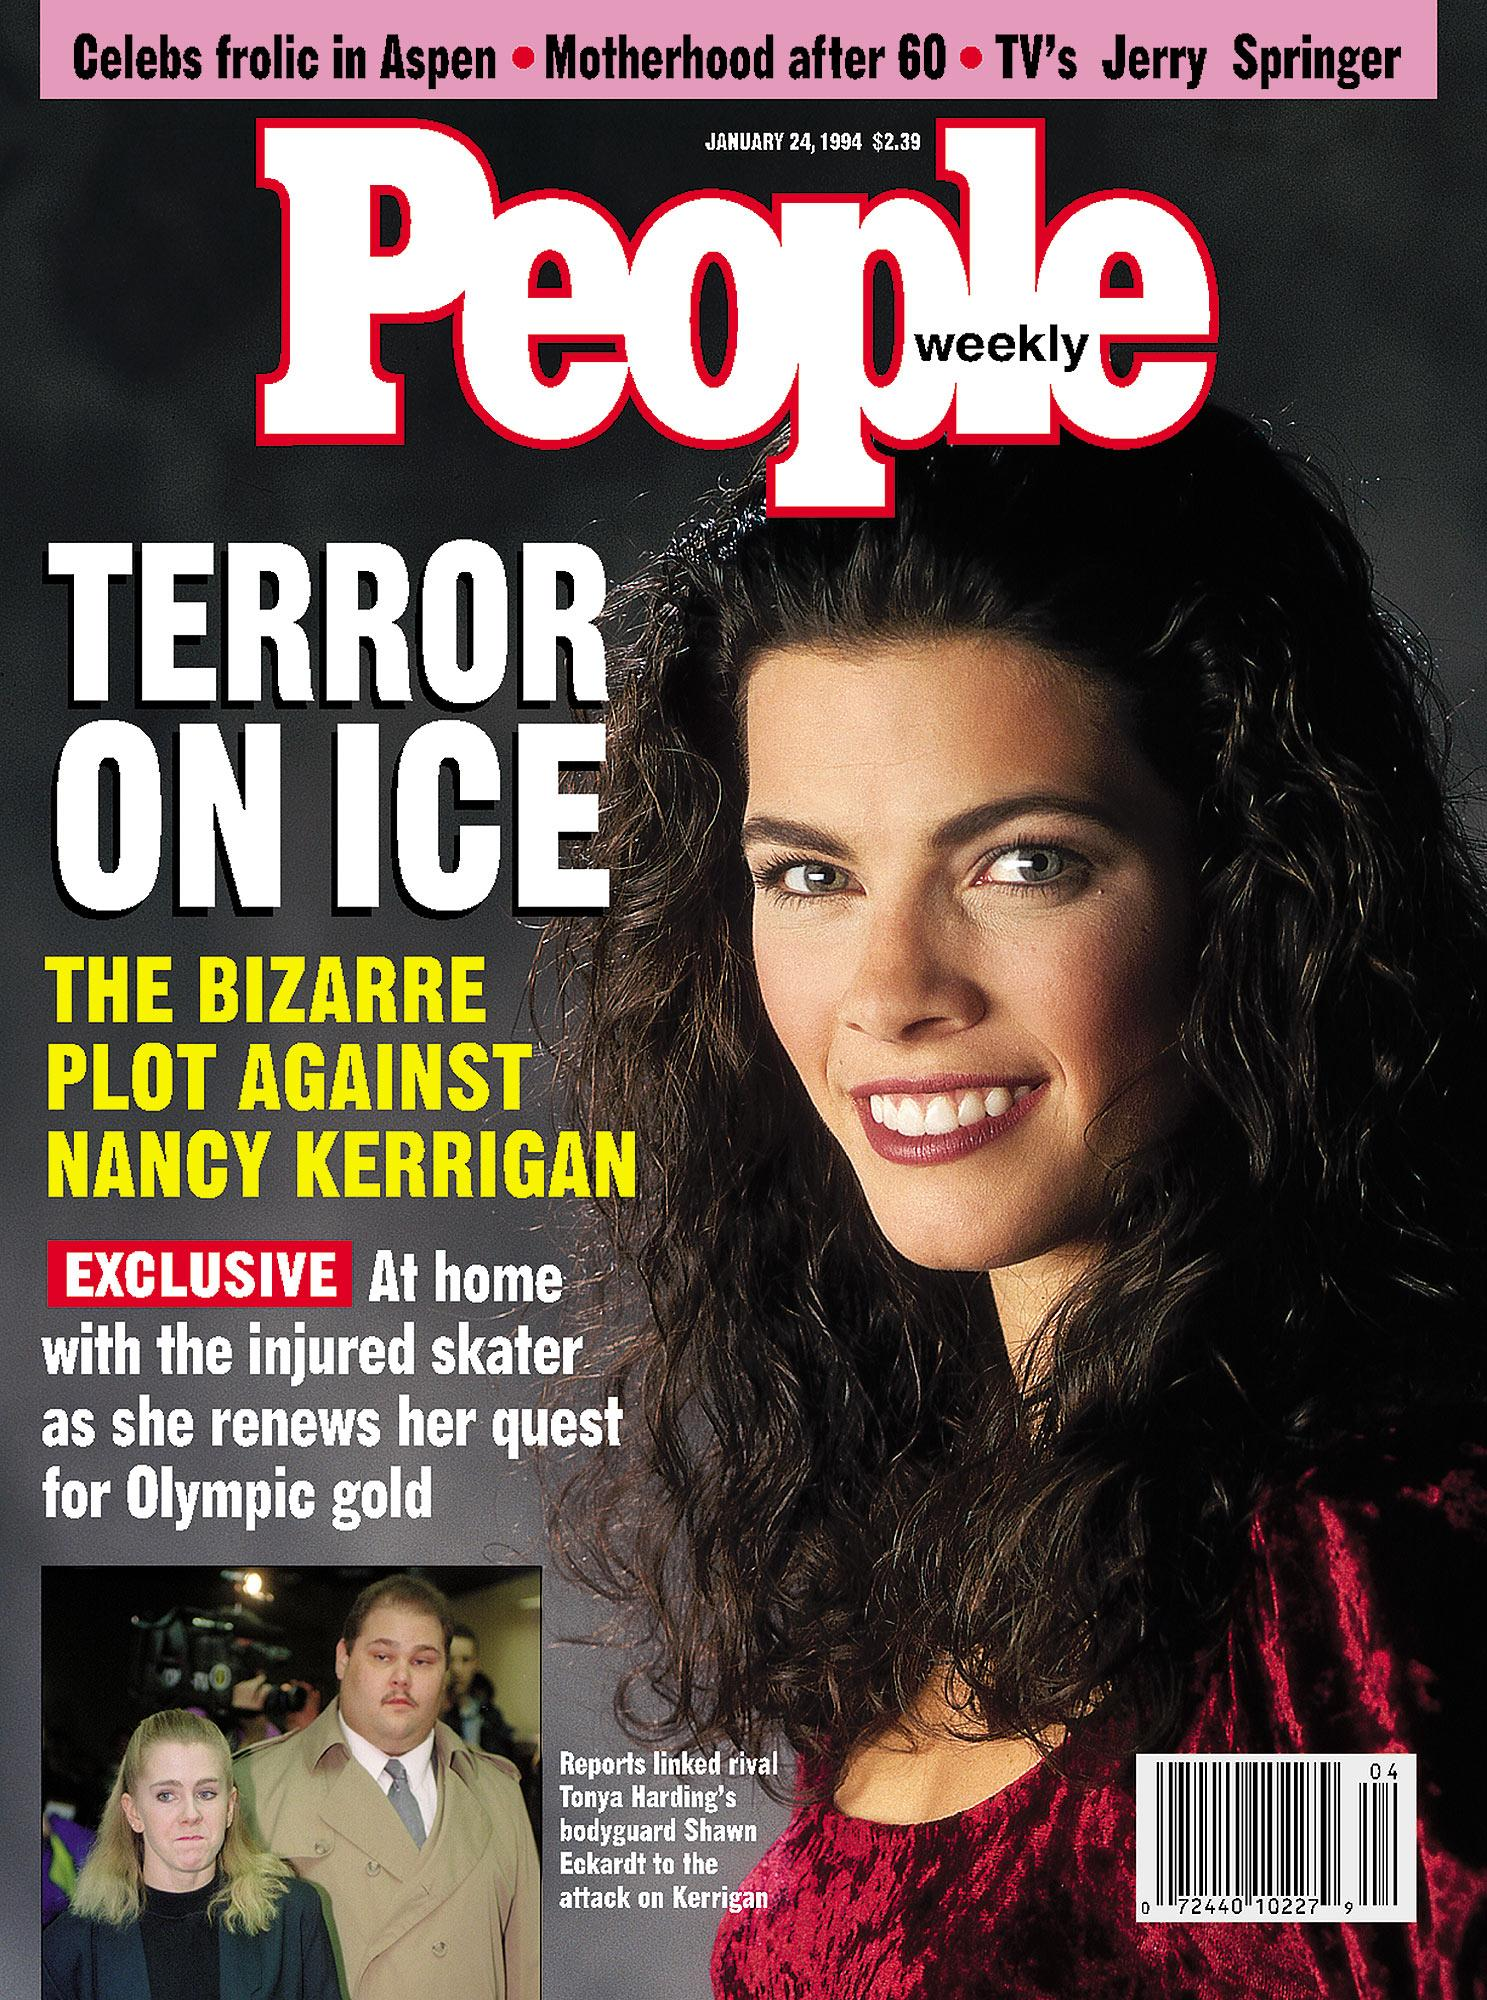 Never-Before-Seen Evidence Emerges in the Case Against Tonya Harding for the Nancy Kerrigan Attack